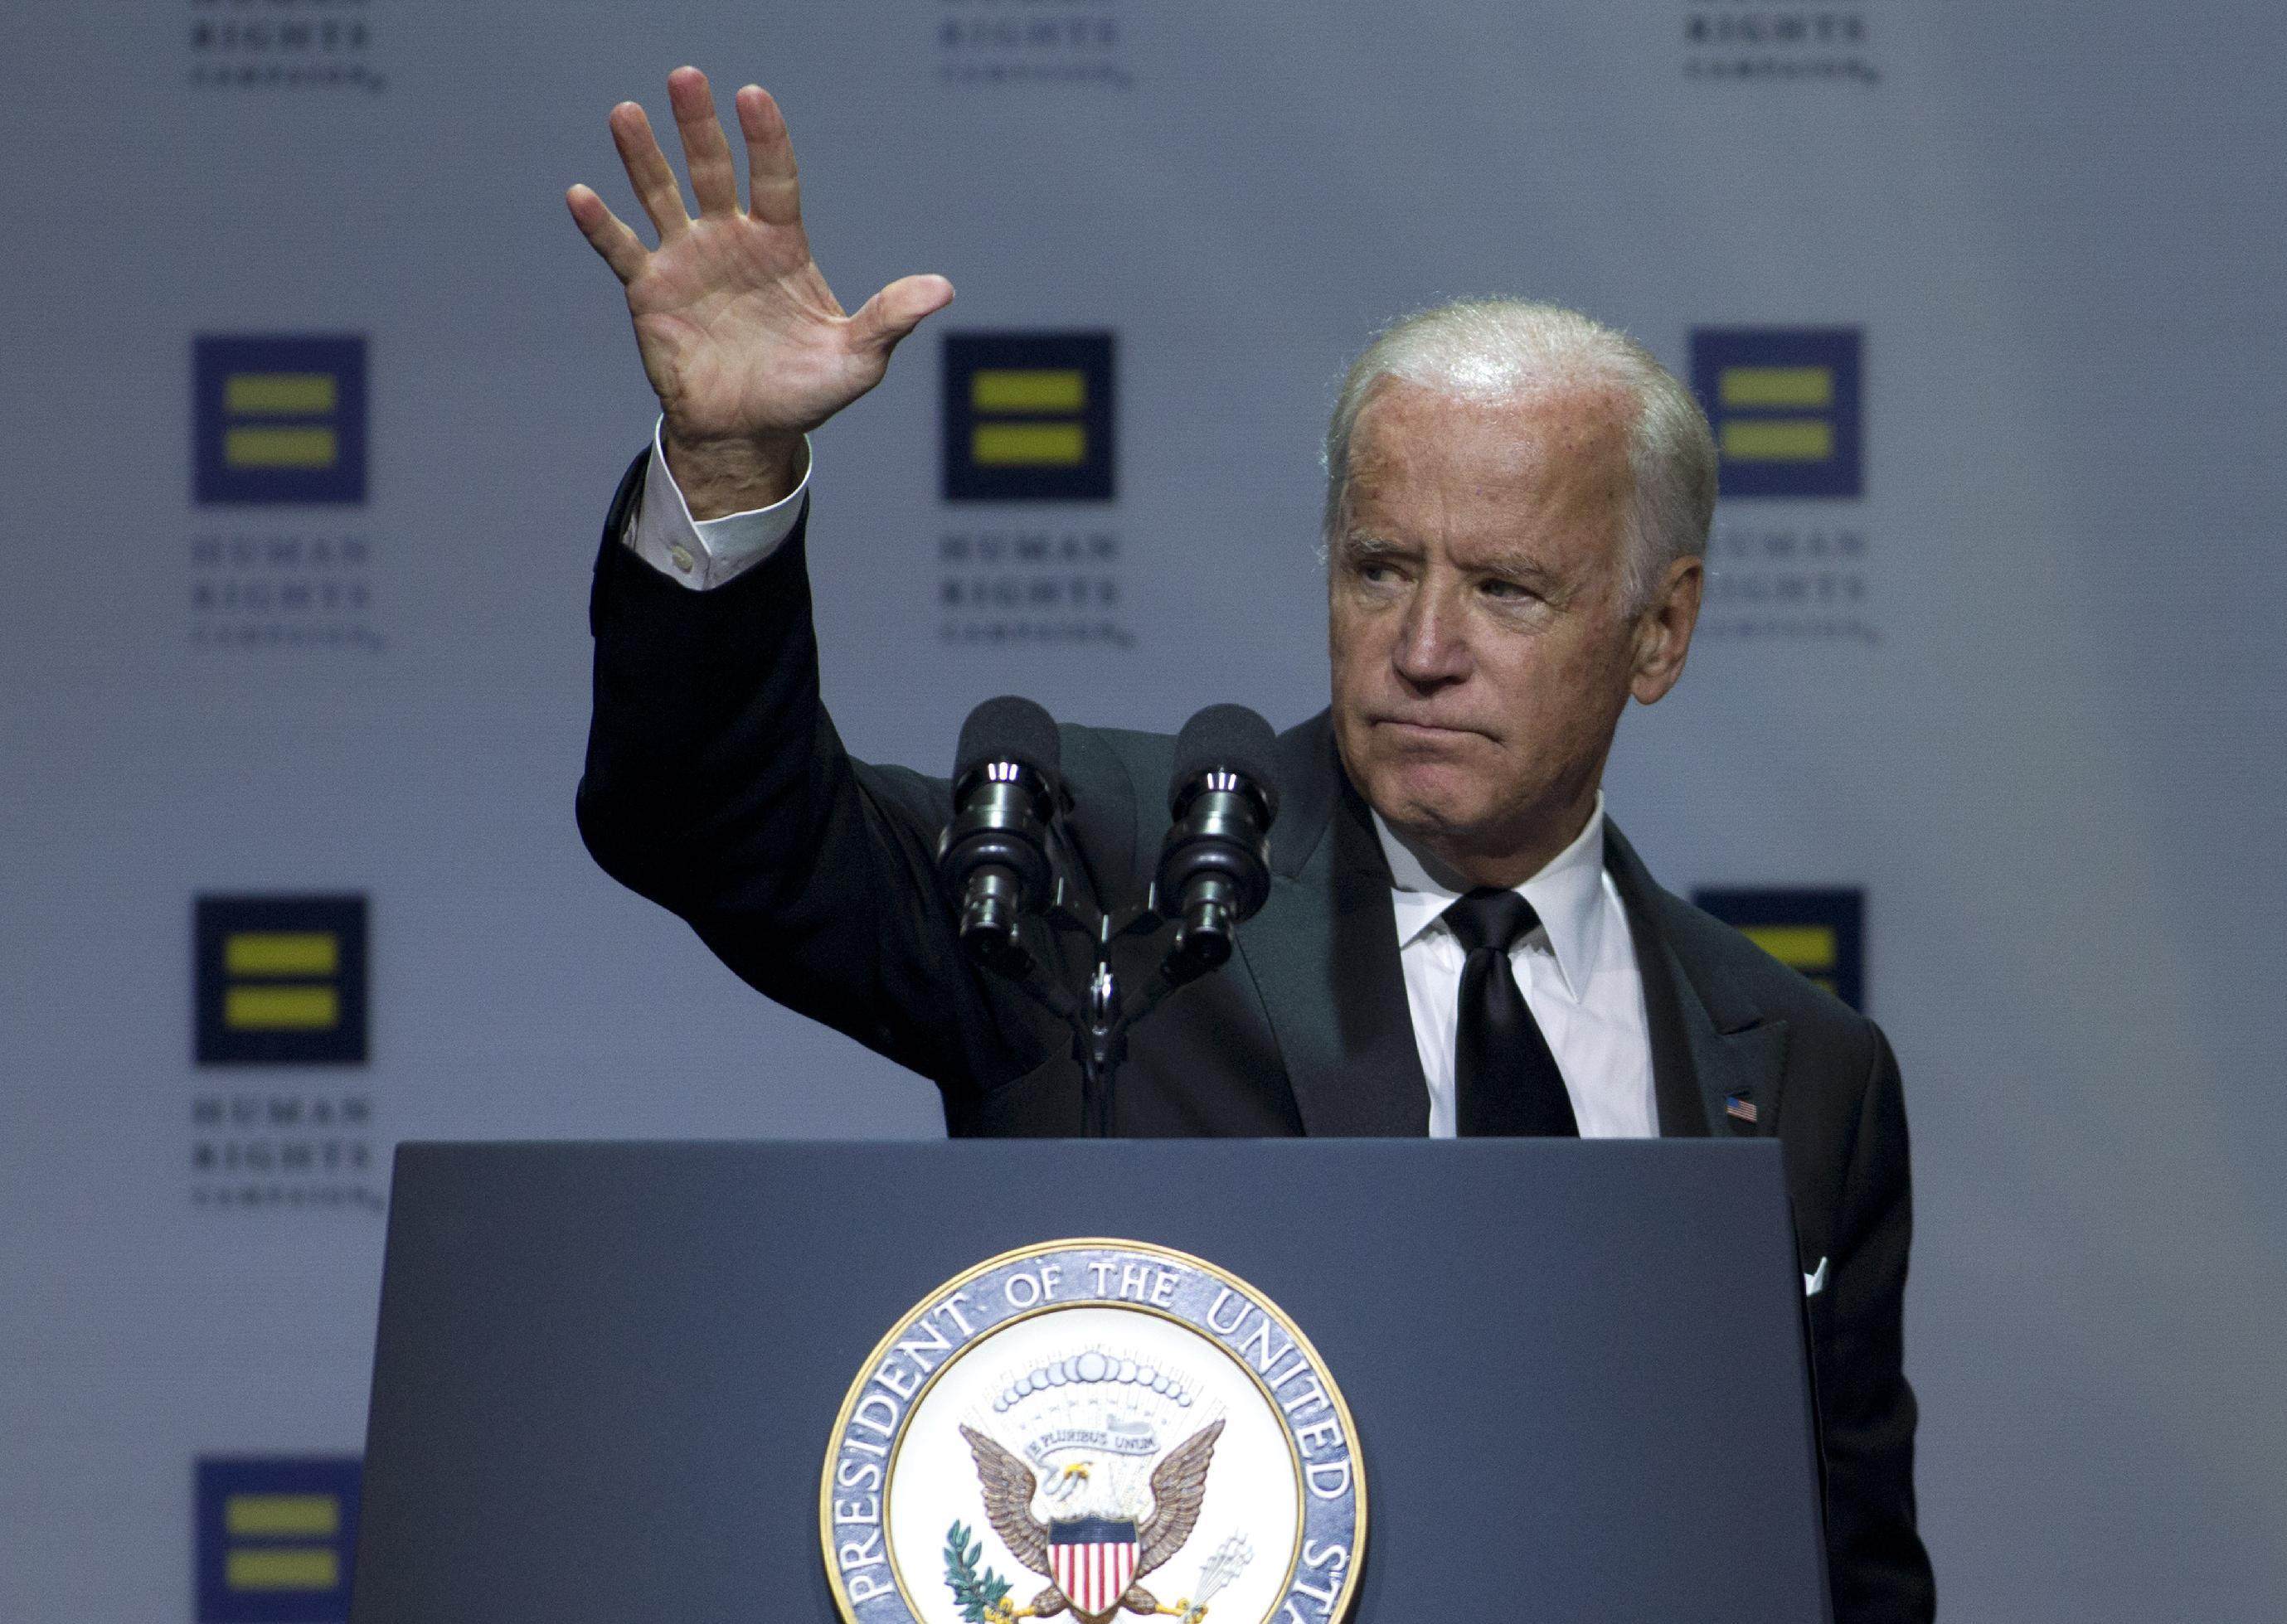 Biden backs transgender military service as US weighs policy